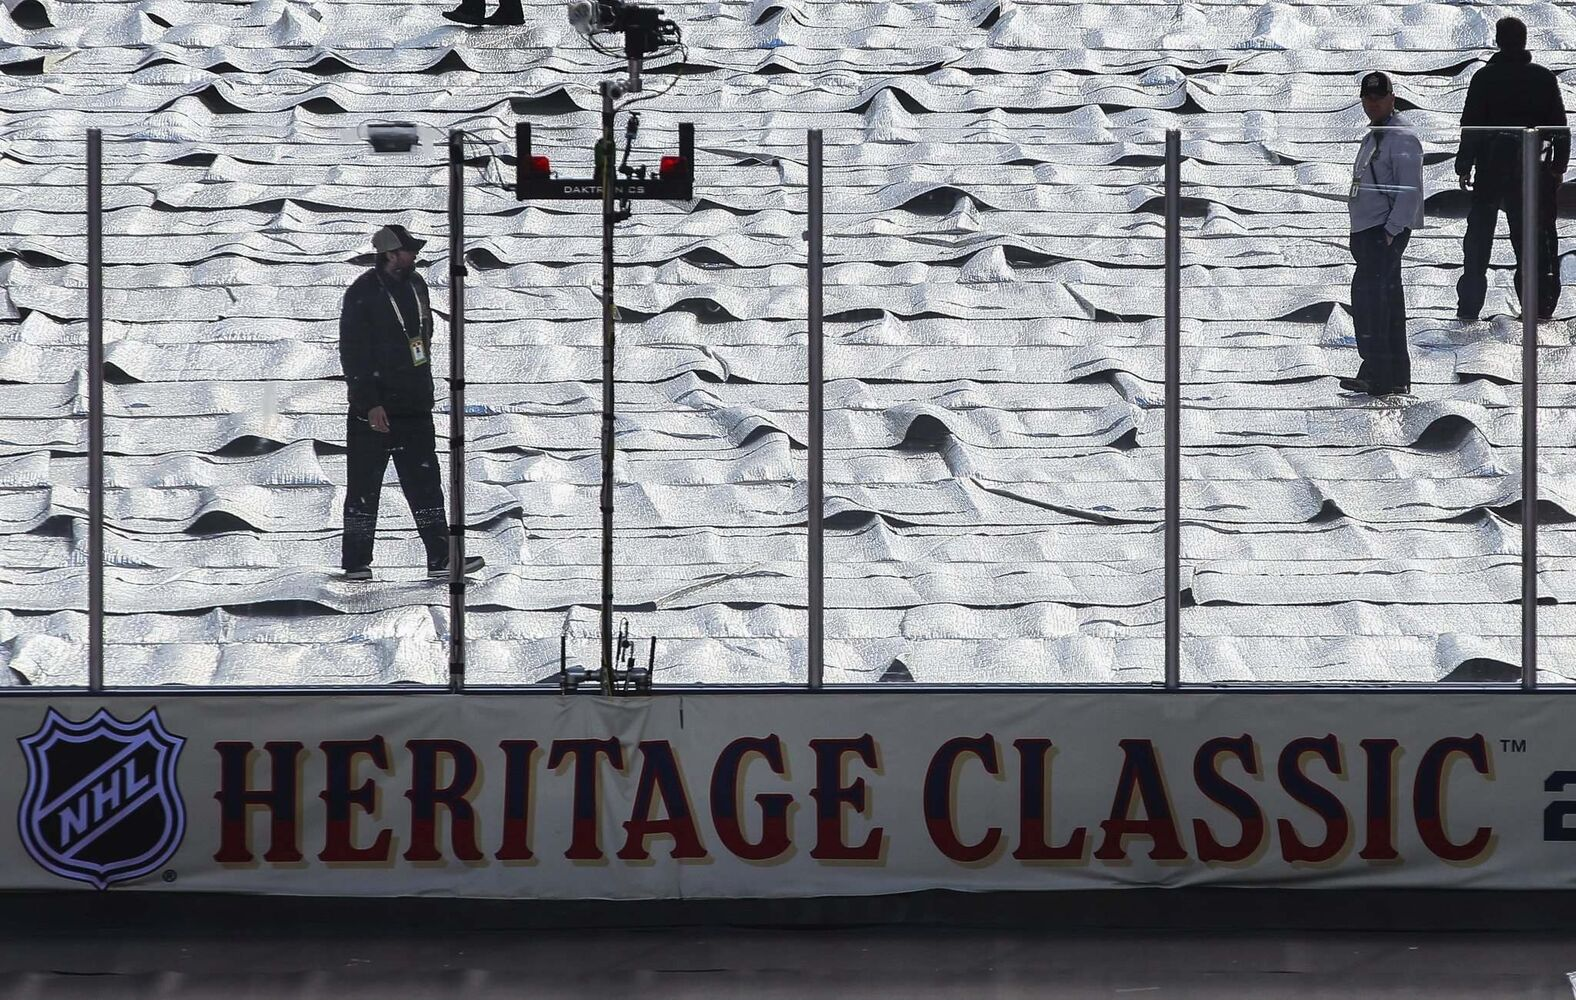 Rink maintenance staff keep an eye on the ice before the NHL game between the Winnipeg Jets and the Edmonton Oilers at Investors Group Field. Glare delayed the beginning of the game, rescheduled to begin at 3:53 p.m.</p> (MIKE DEAL / WINNIPEG FREE PRESS)